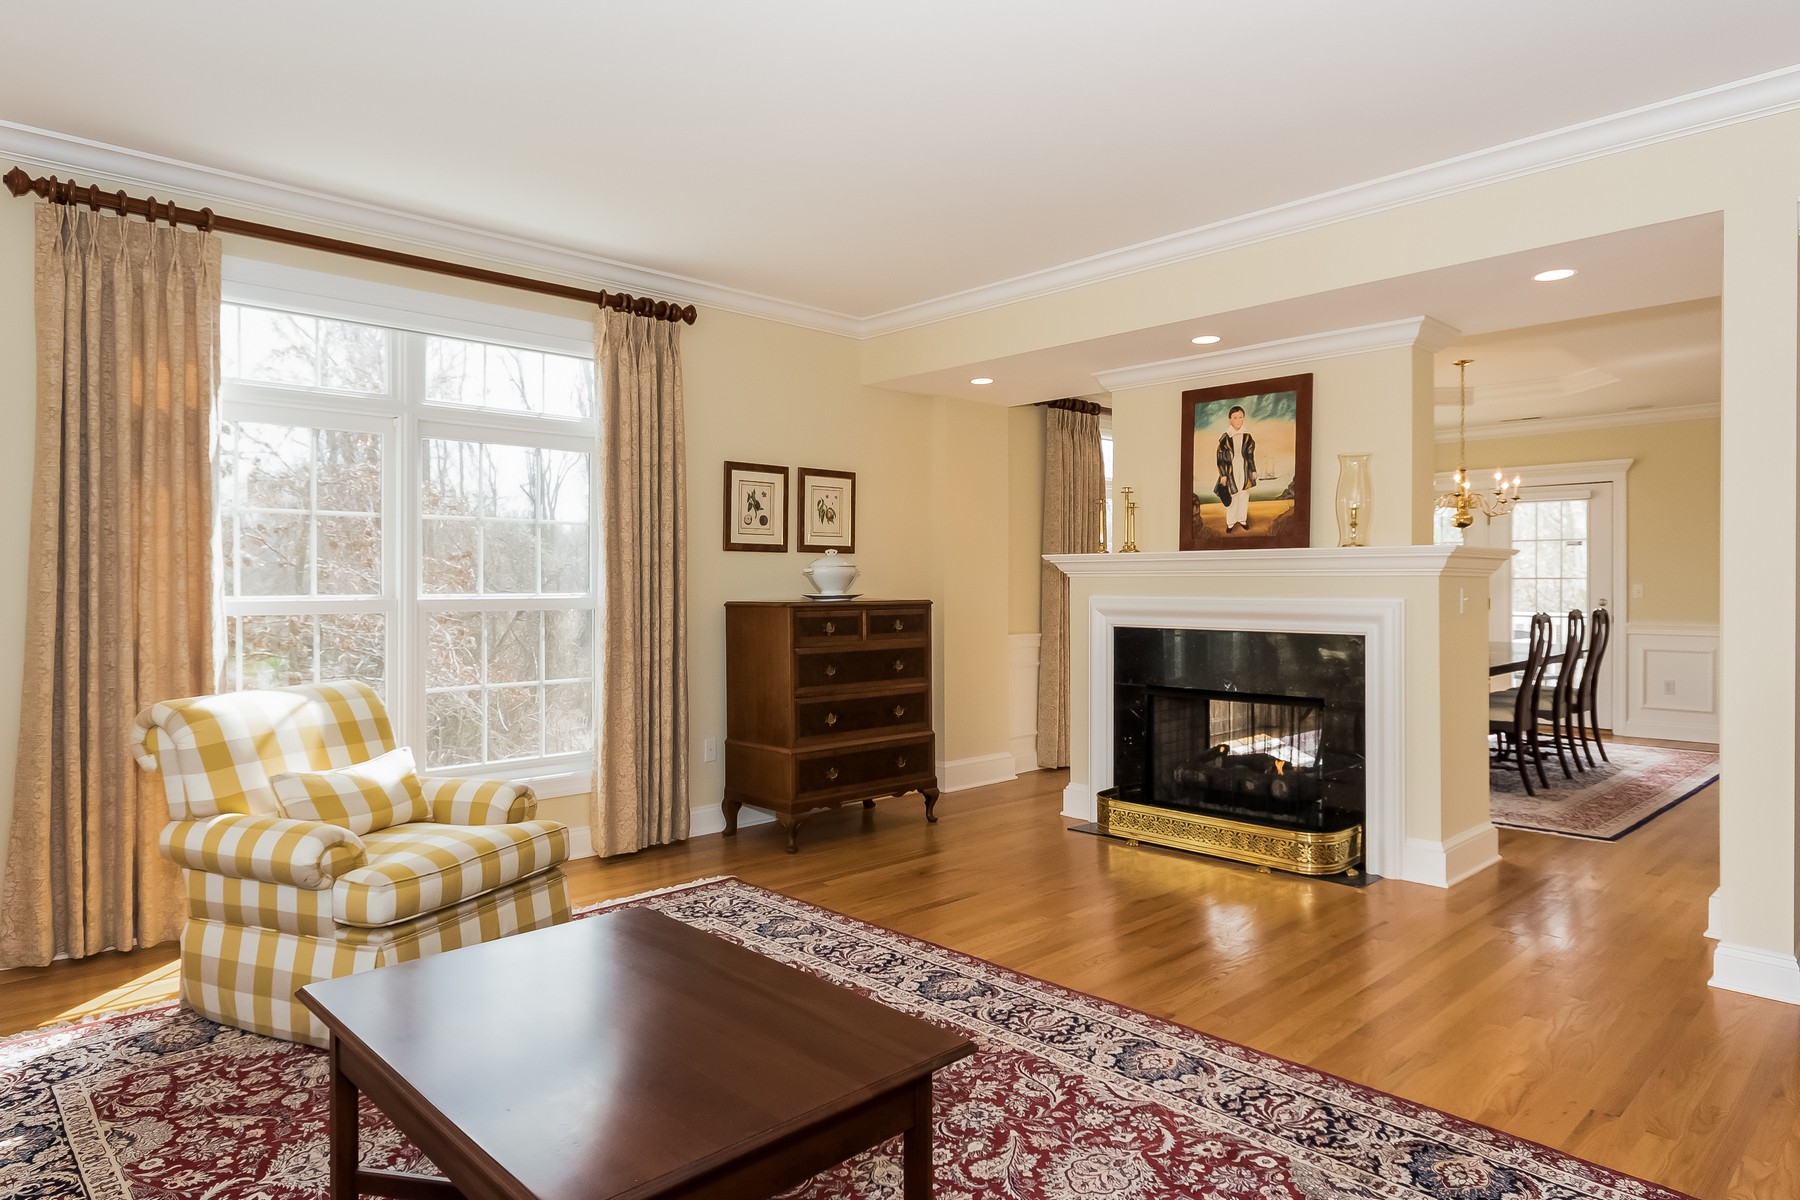 Condominium for Sale at Luxurious End Unit Townhouse 71 Aberdeen Way 71 Southport, Fairfield, Connecticut, 06890 United States